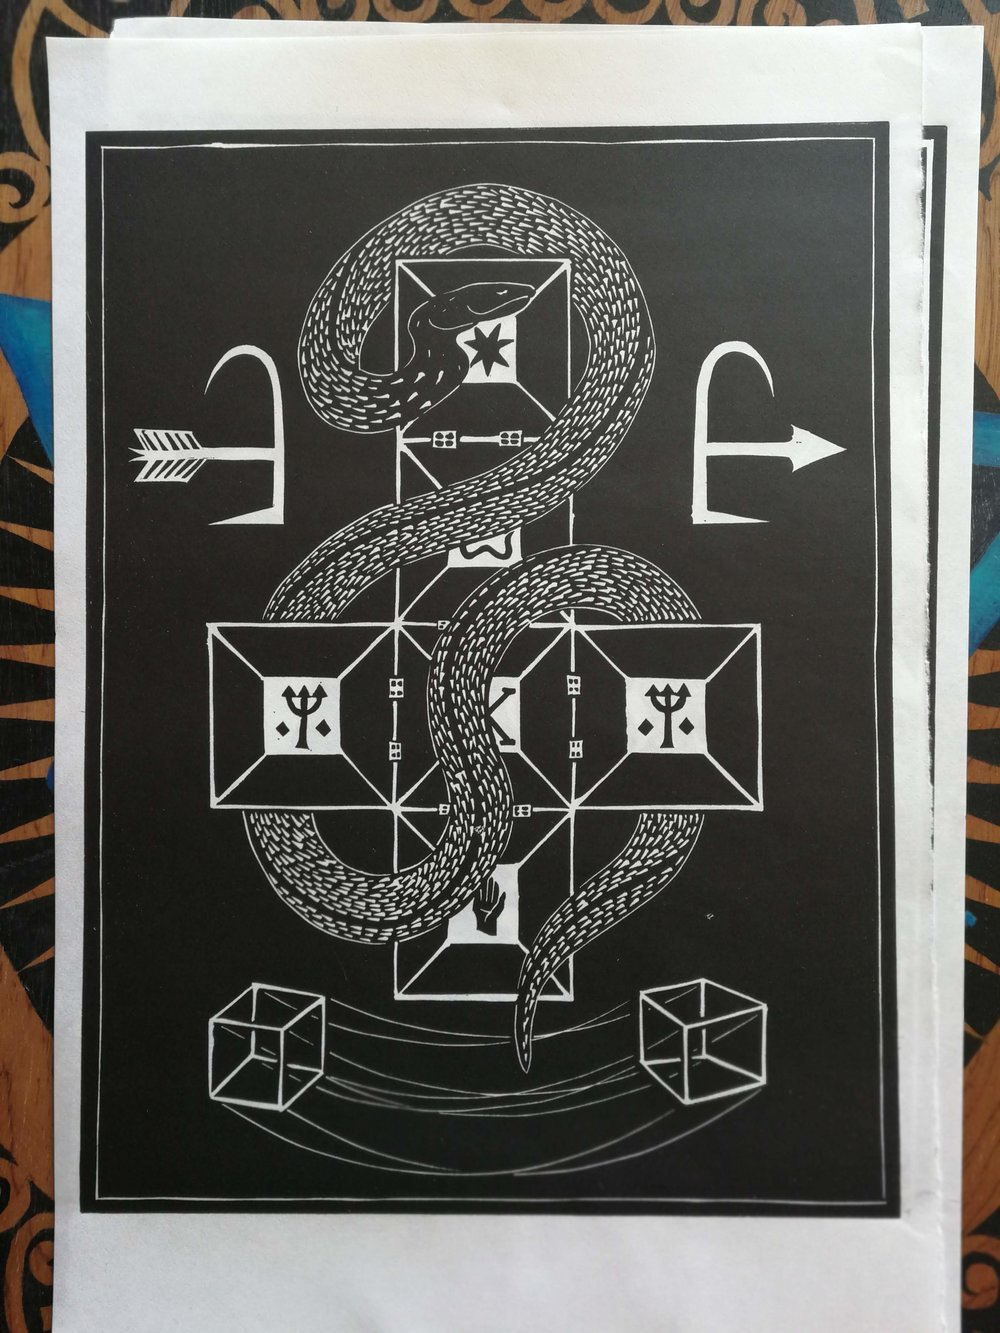 The Serpent in the Tesseract